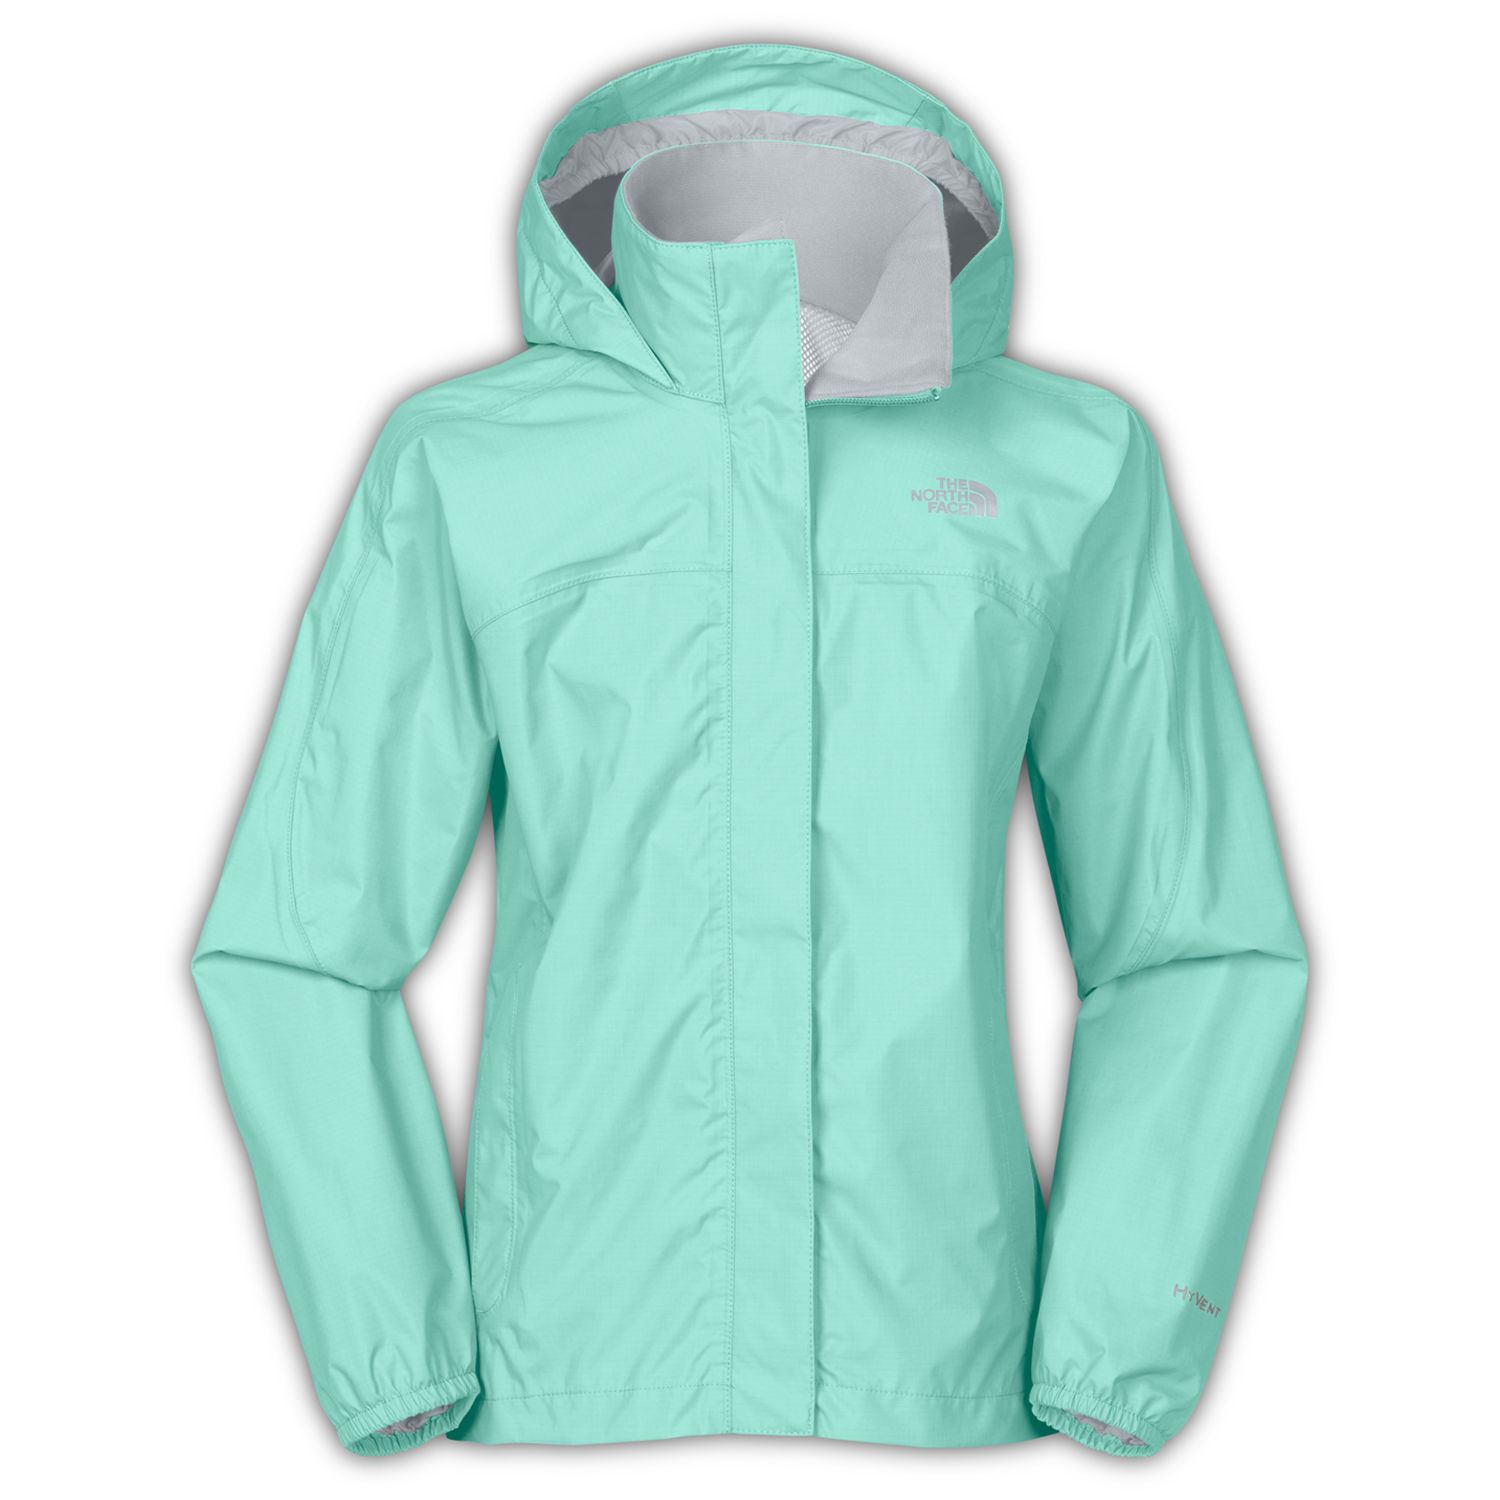 48ca723ca78c The North Face Resolve Reflective Jacket - Girl s